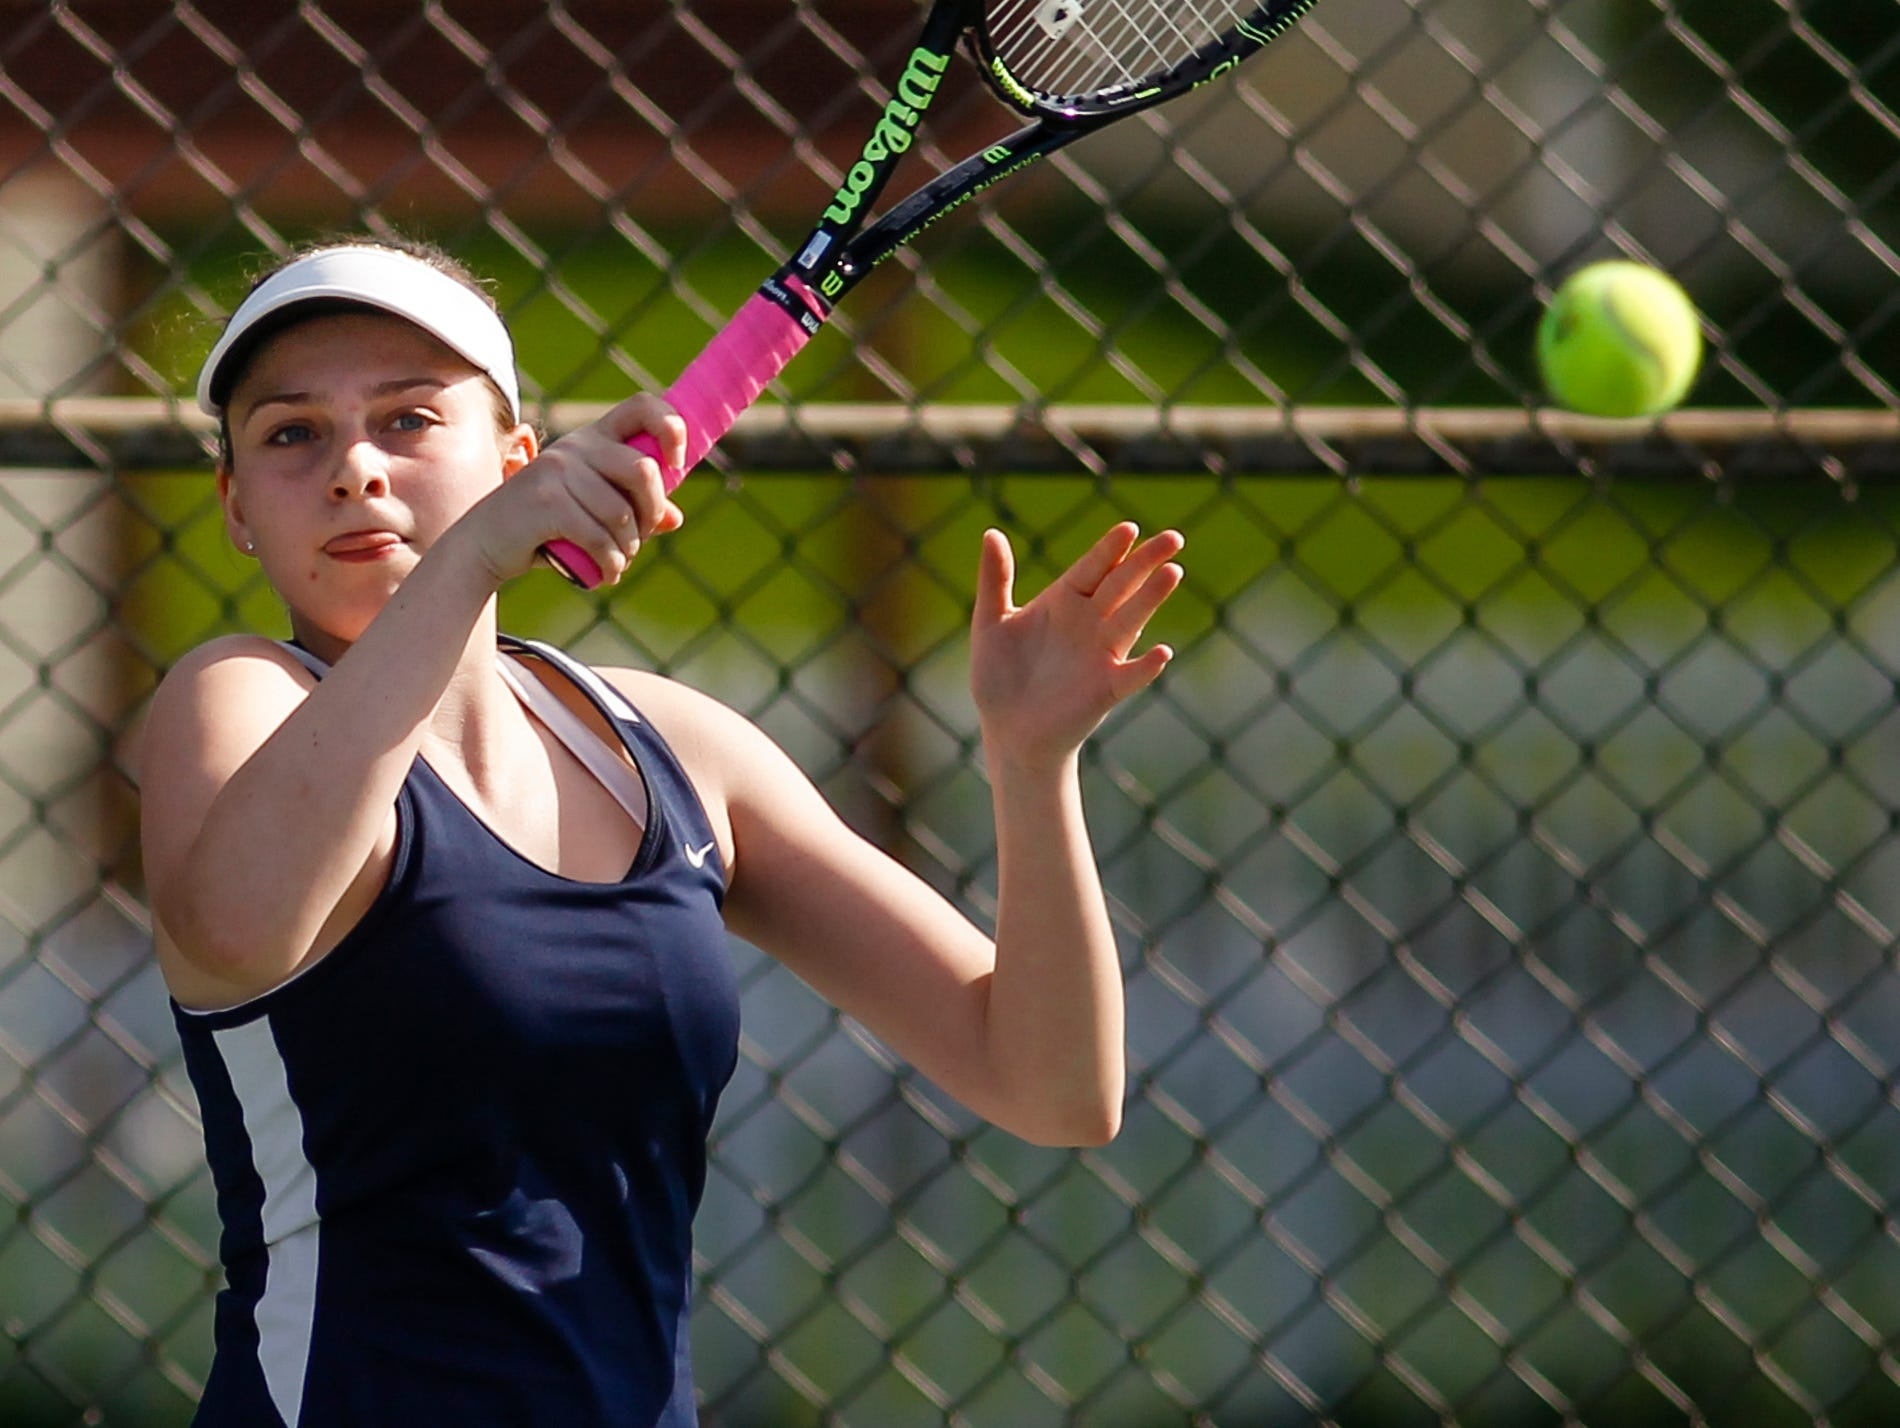 Hannah Vogelsang of Haslett volleys against Lakewood No. 1 singles junior Kendra Stoepker May 19, 2016, during the Div. 3 Tennis Regional final at Haslett High School. [MATTHEW DAE SMITH | for the Lansing State Journal]